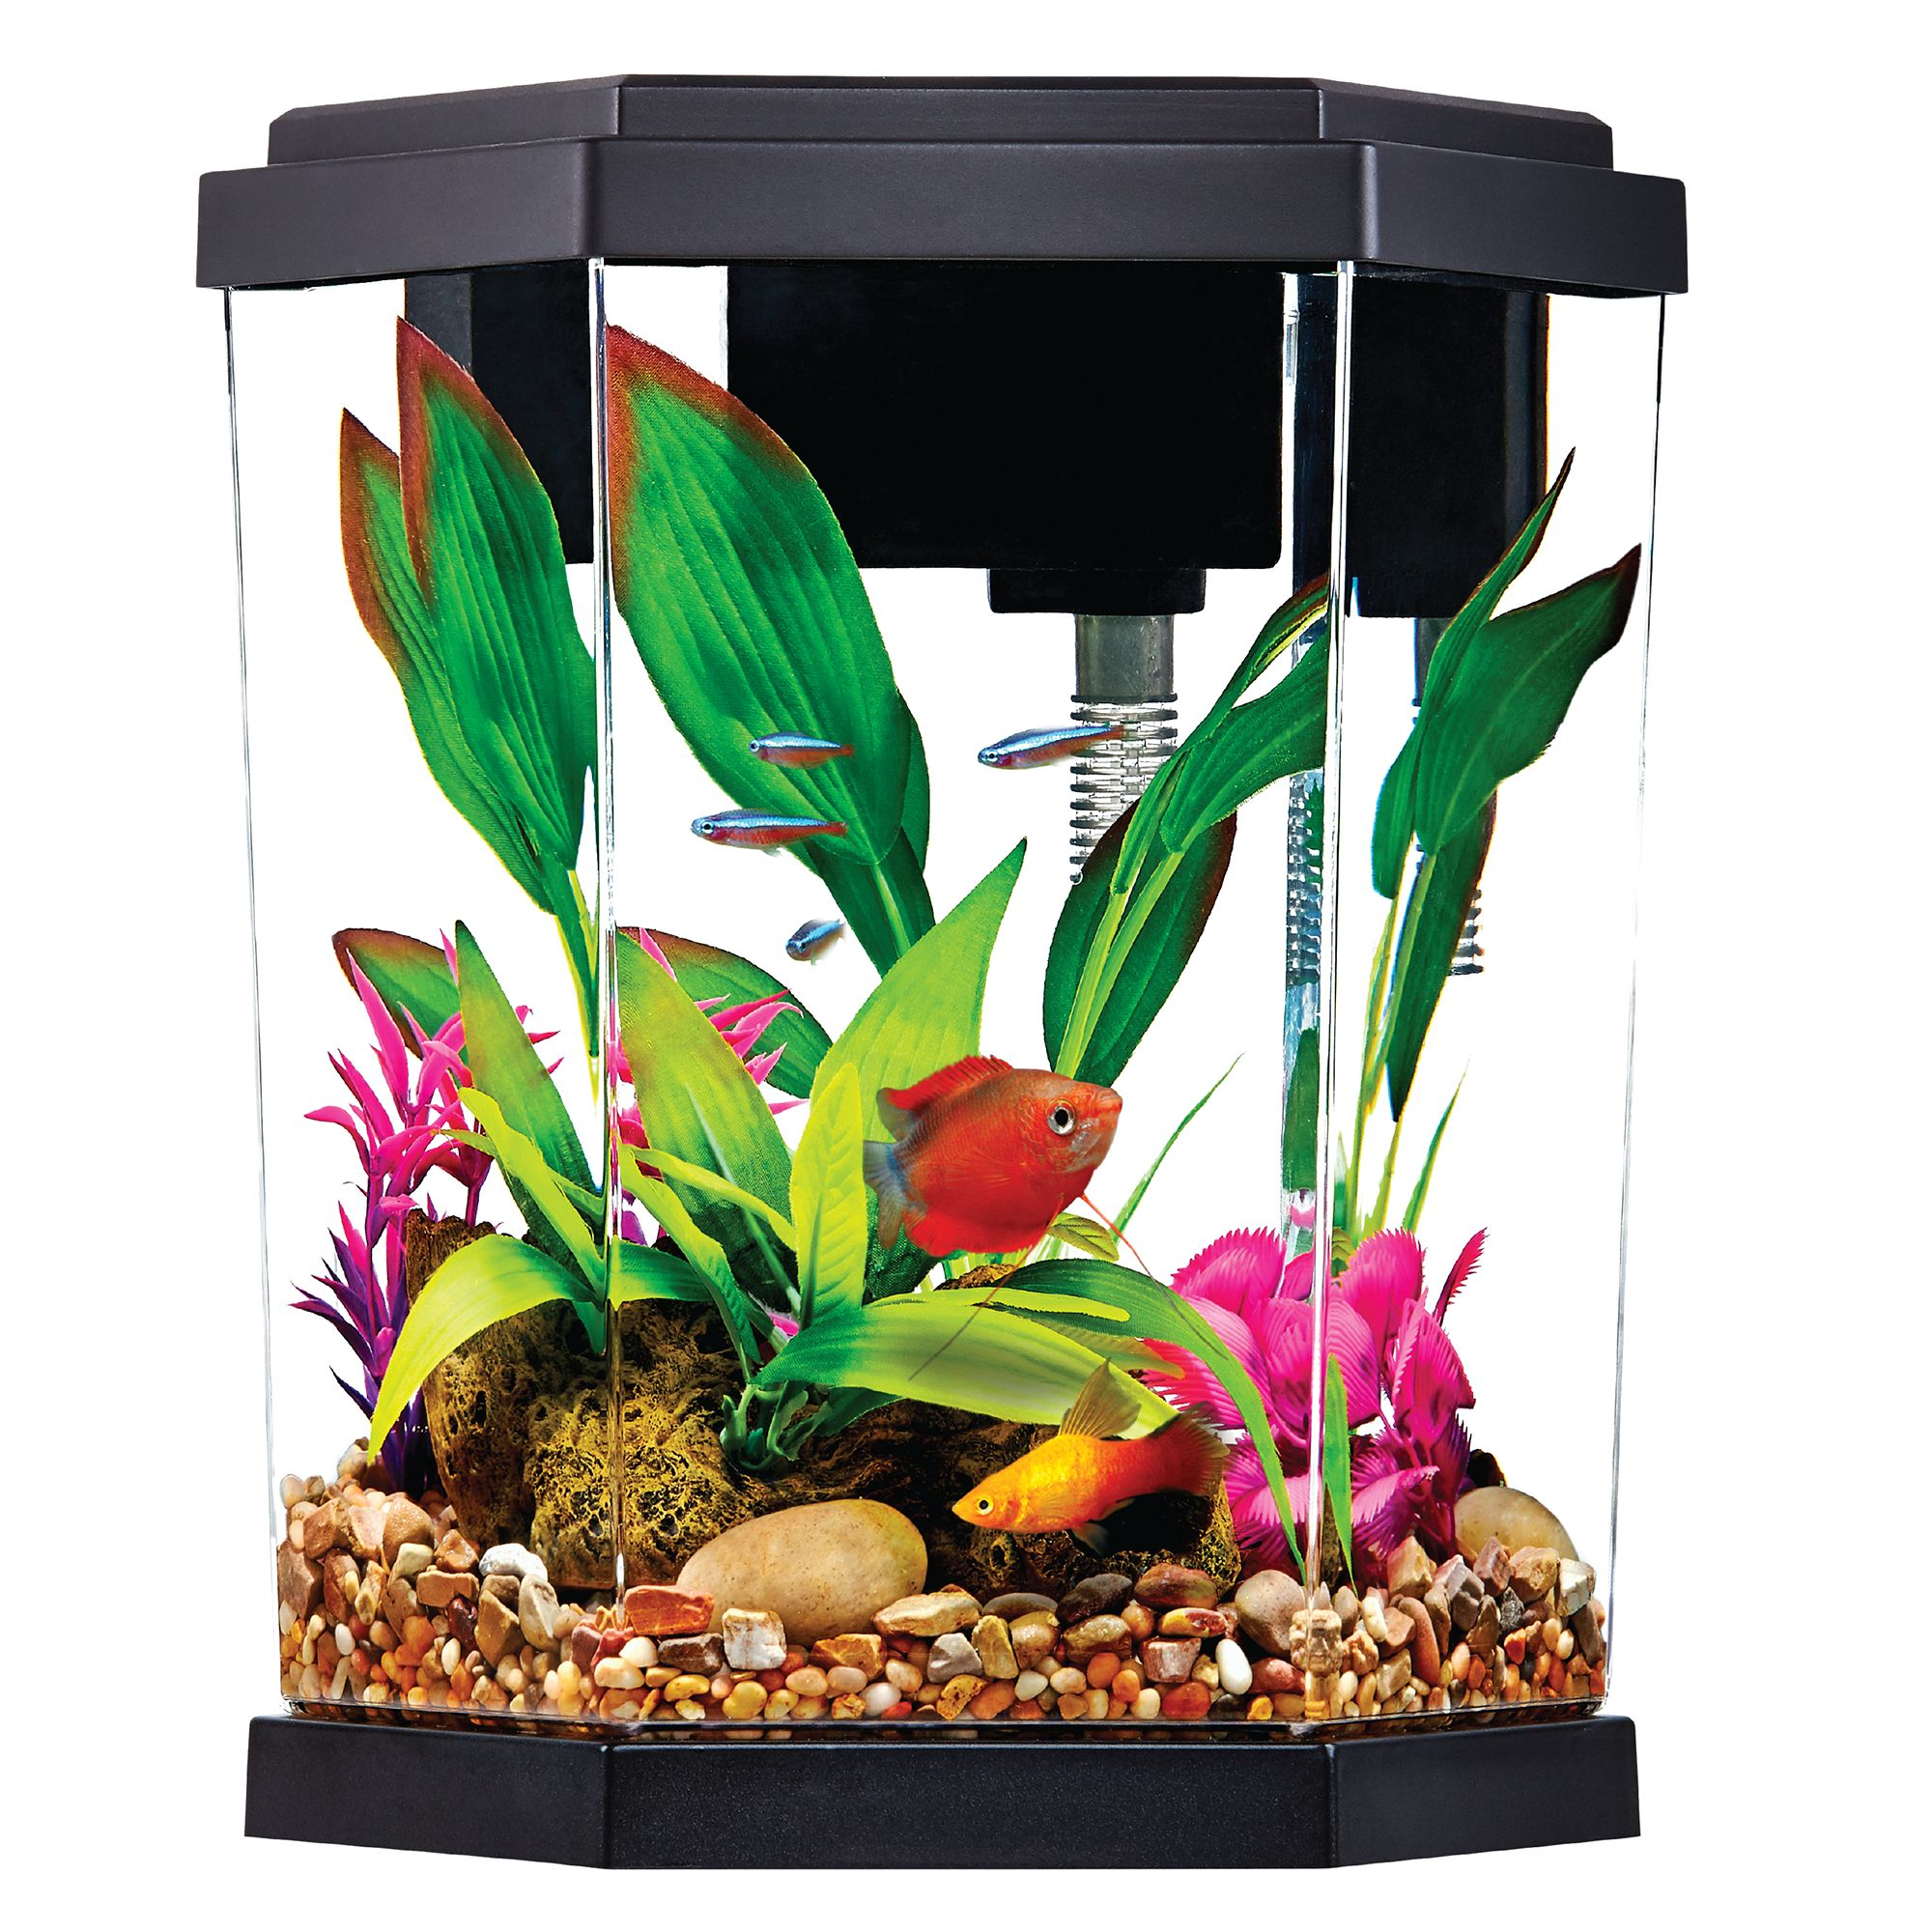 Top Fin 2 Gallon Intrigue Aquarium Kit Size 2 Gal